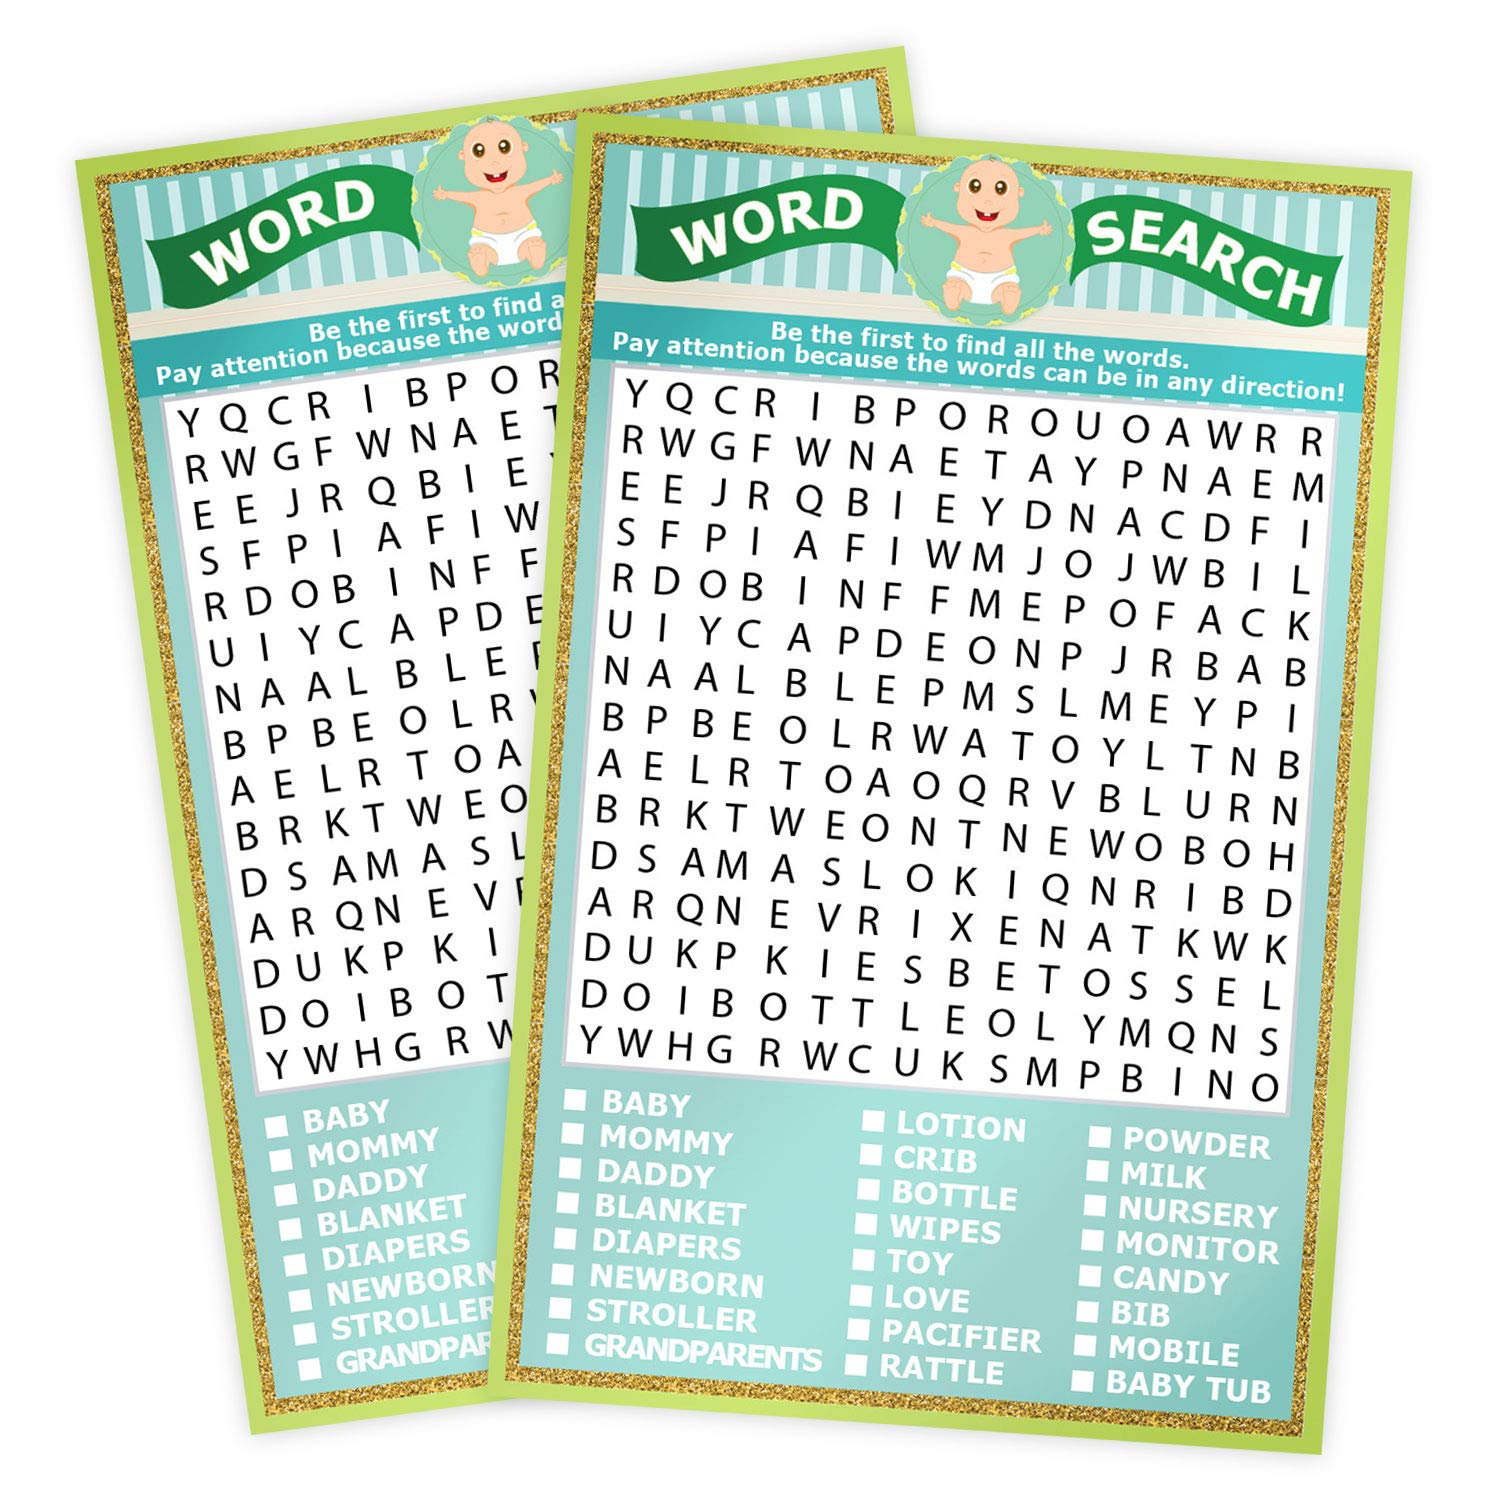 Baby Shower Word Search Game Unisex Pack for 50 guest supplies Sheet Size 5.31 X 8.26 inches